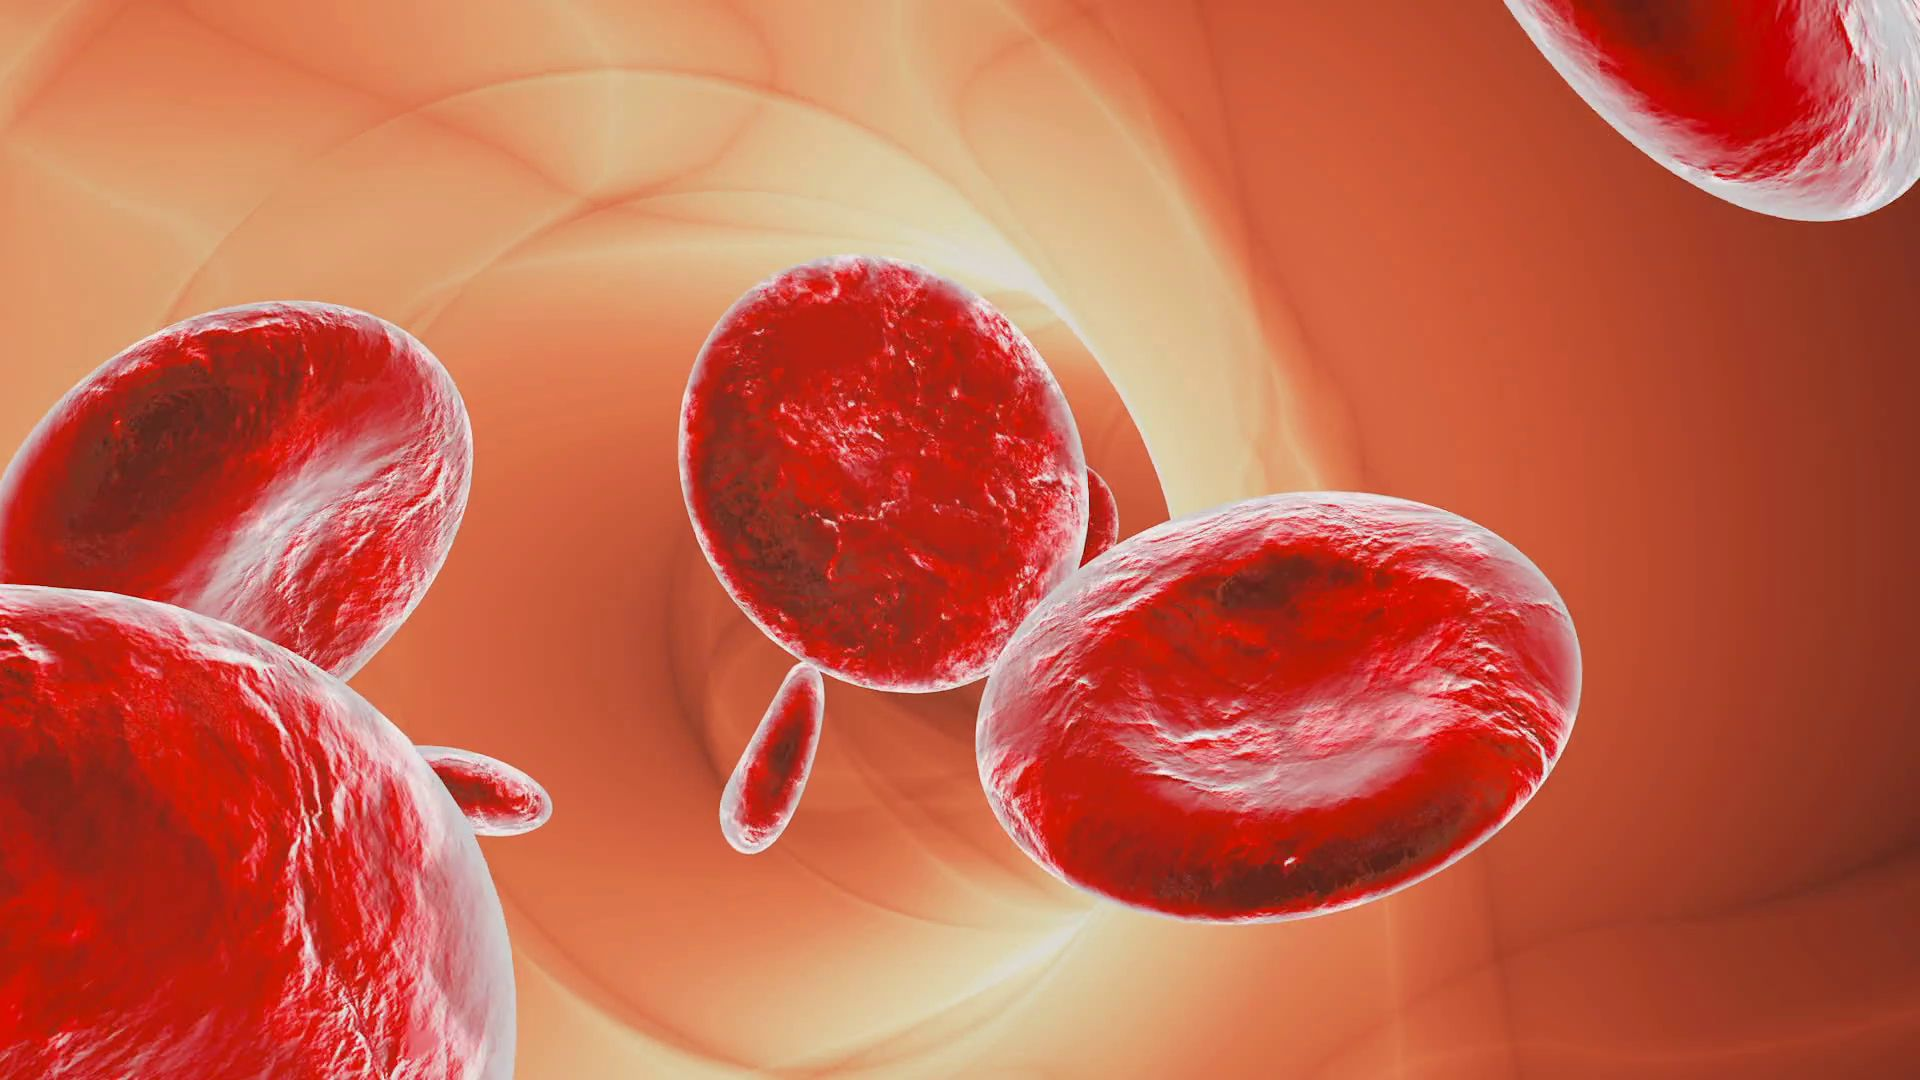 Blood Cells Wallpapers